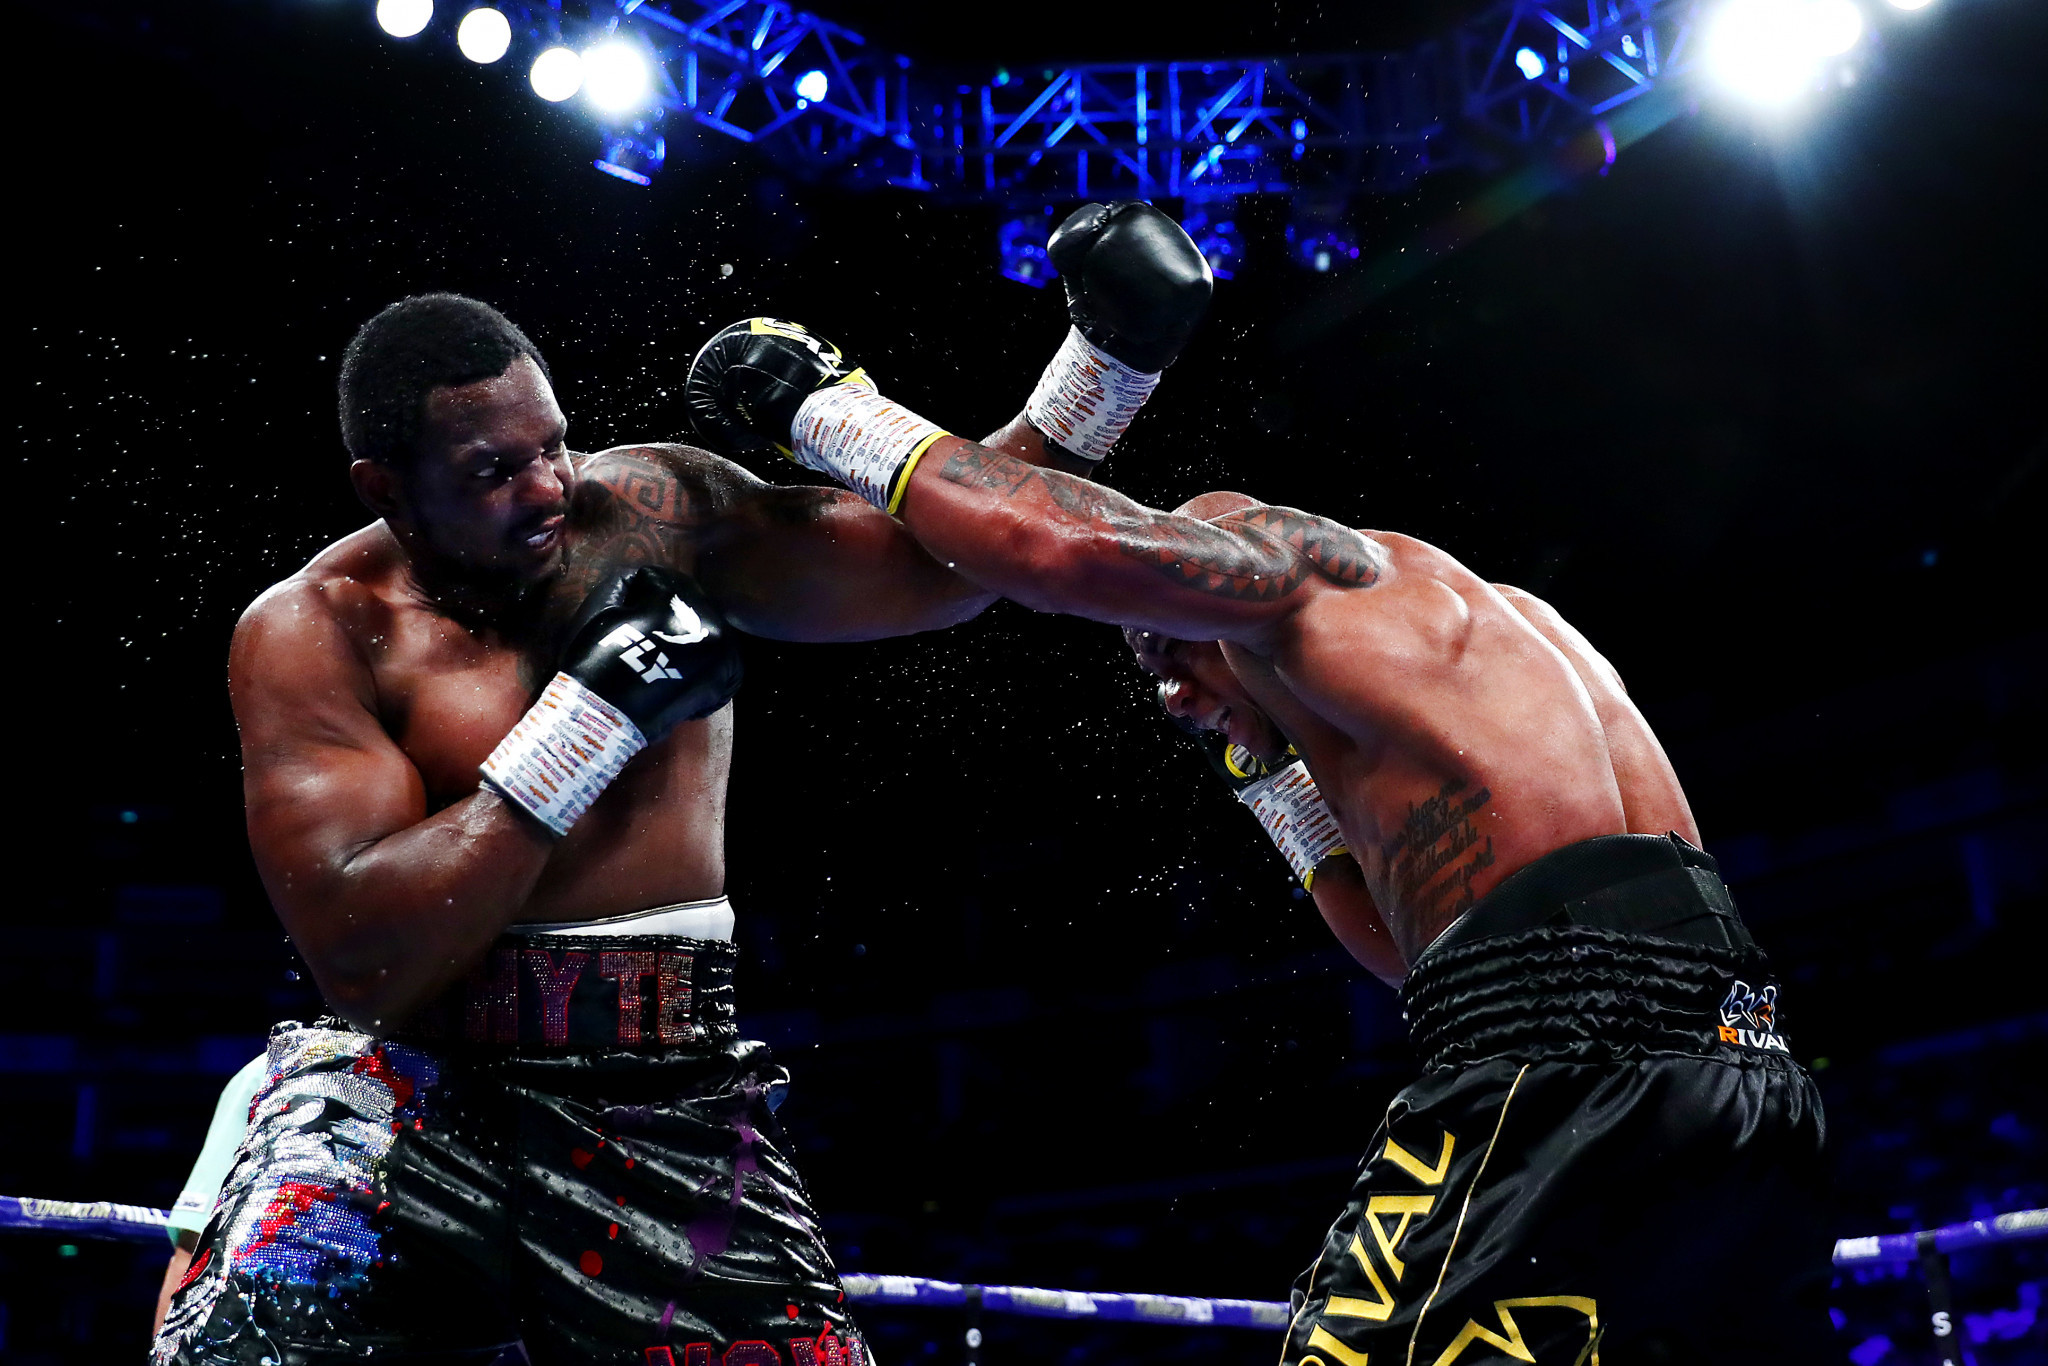 Dillian Whyte outpointed Óscar Rivas at The O2 but it then emerged that he had failed a doping test before the fight ©Getty Images